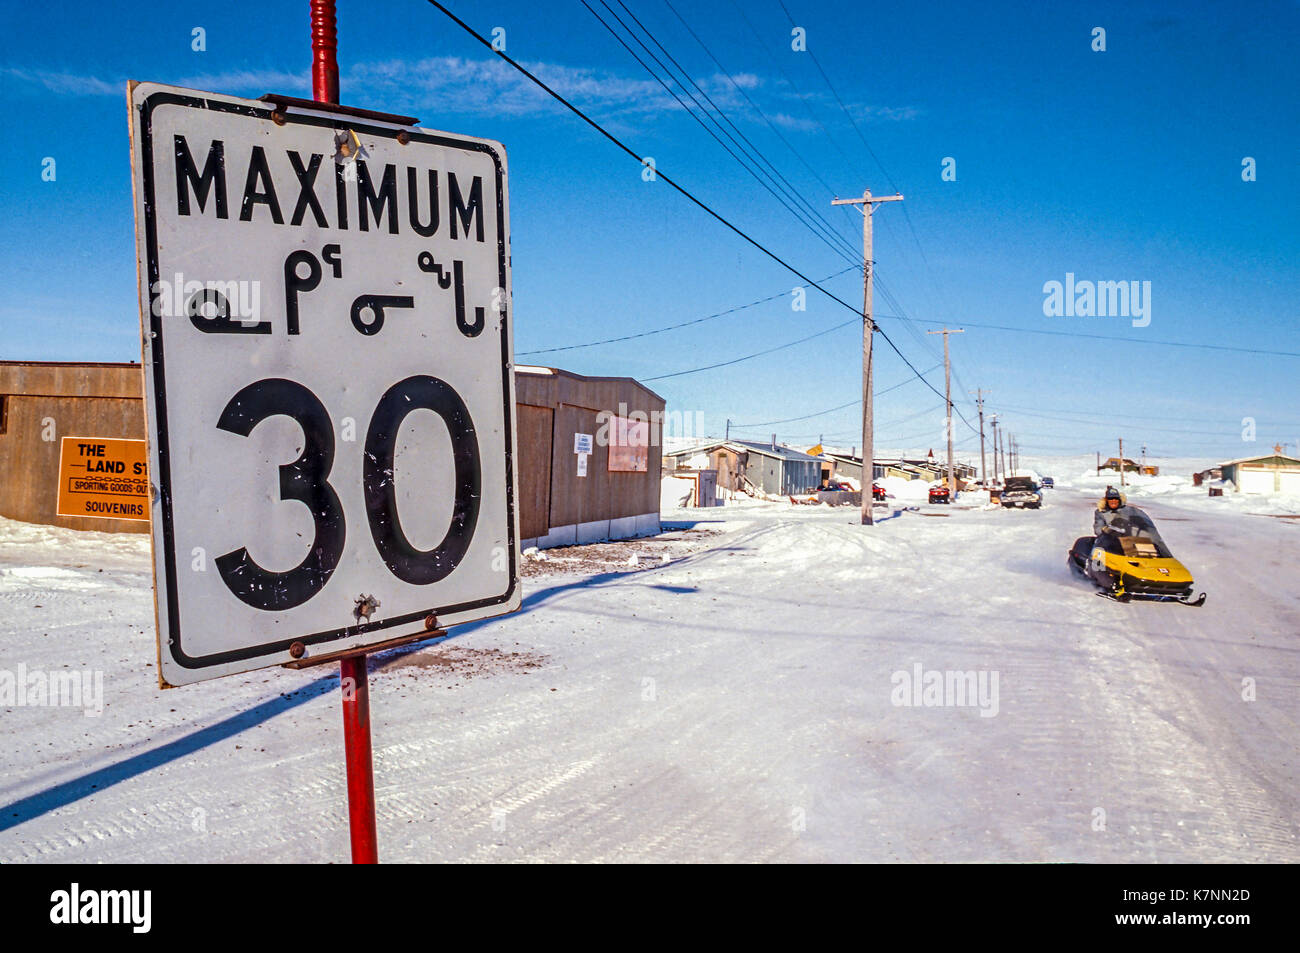 Speed limit sign in Inuit language Inuktitut) along a snowy street in Baker Lake, Nunavut, Canada. - Stock Image